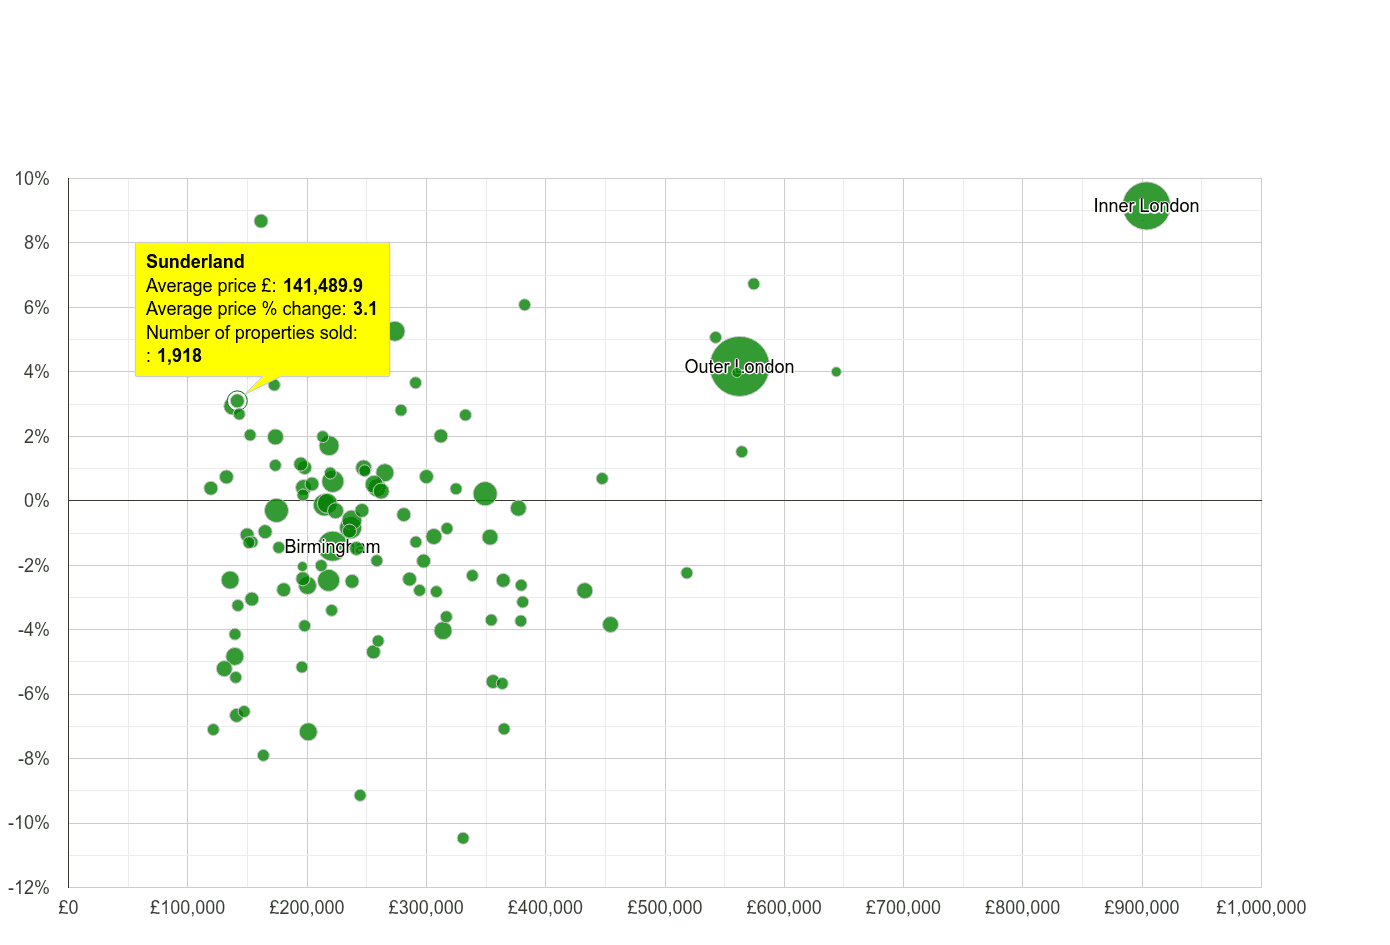 Sunderland house prices compared to other cities